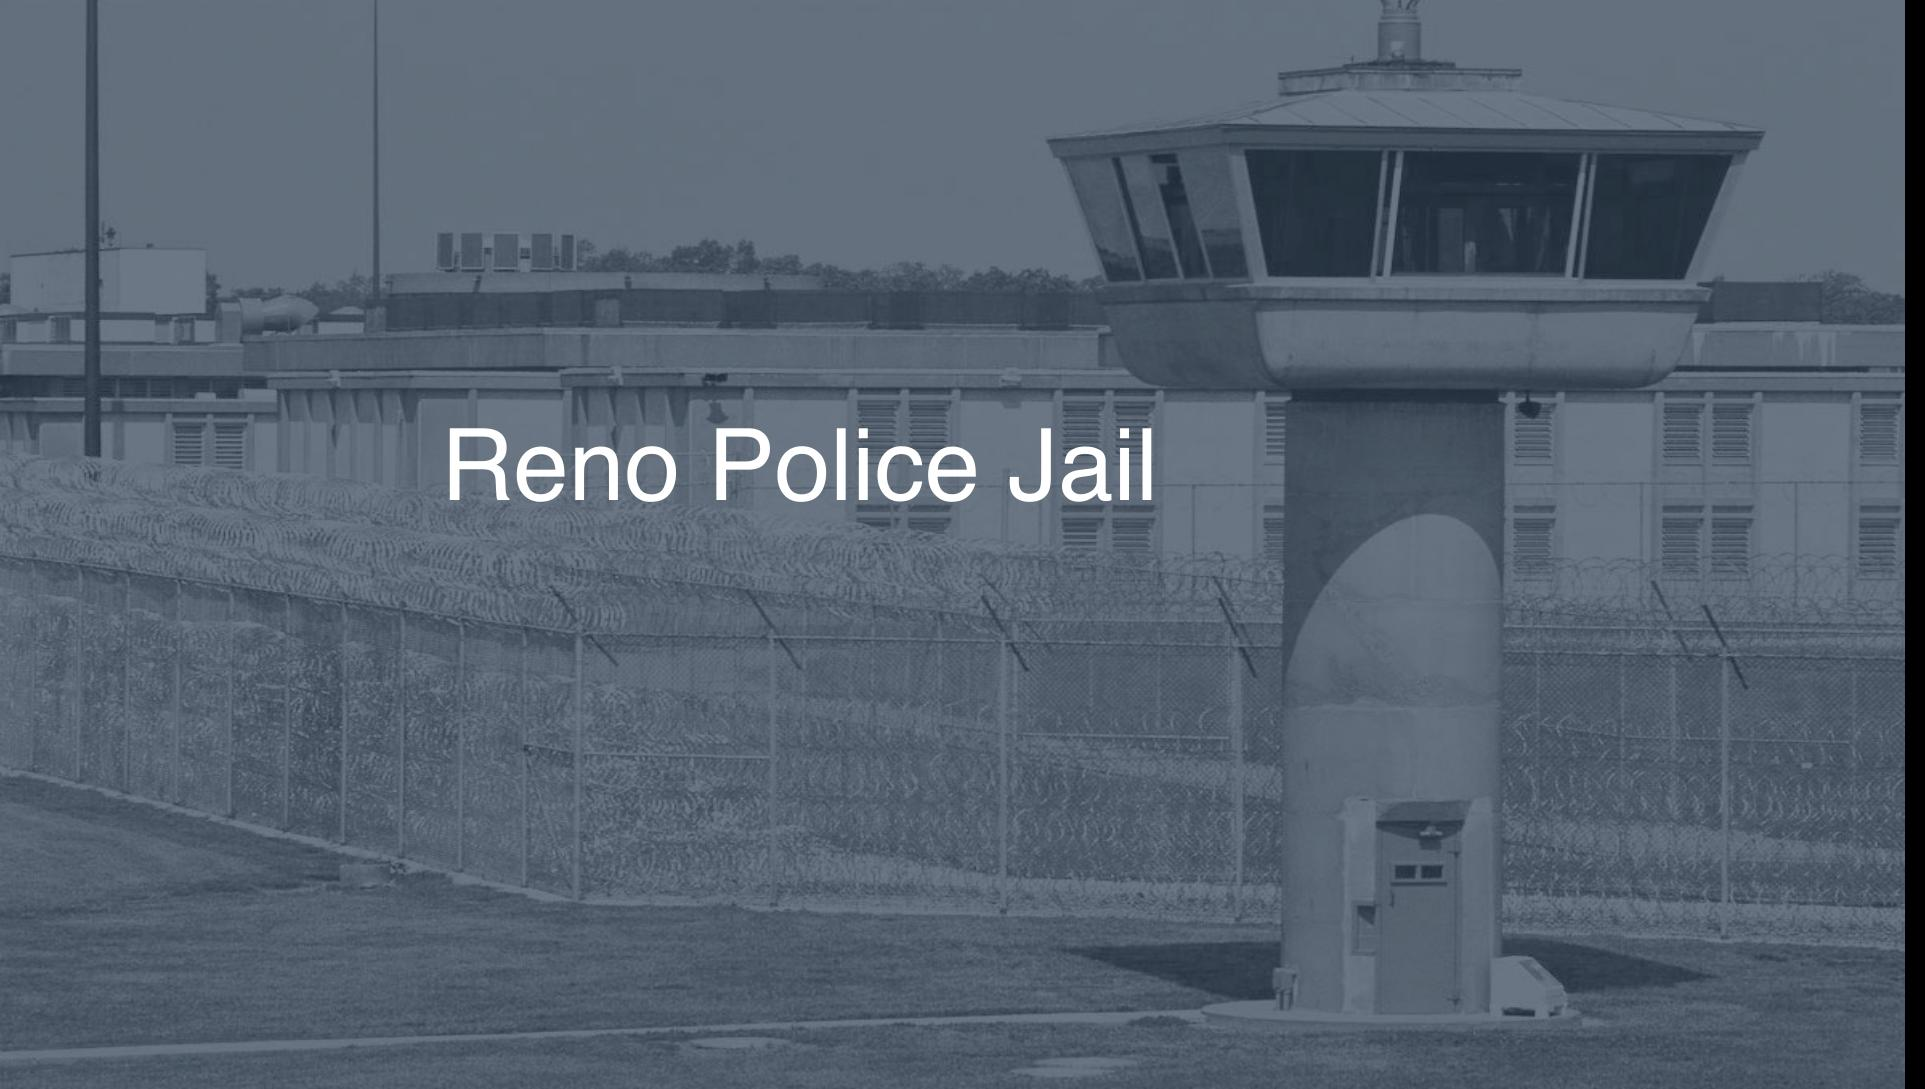 Reno Police Jail correctional facility picture